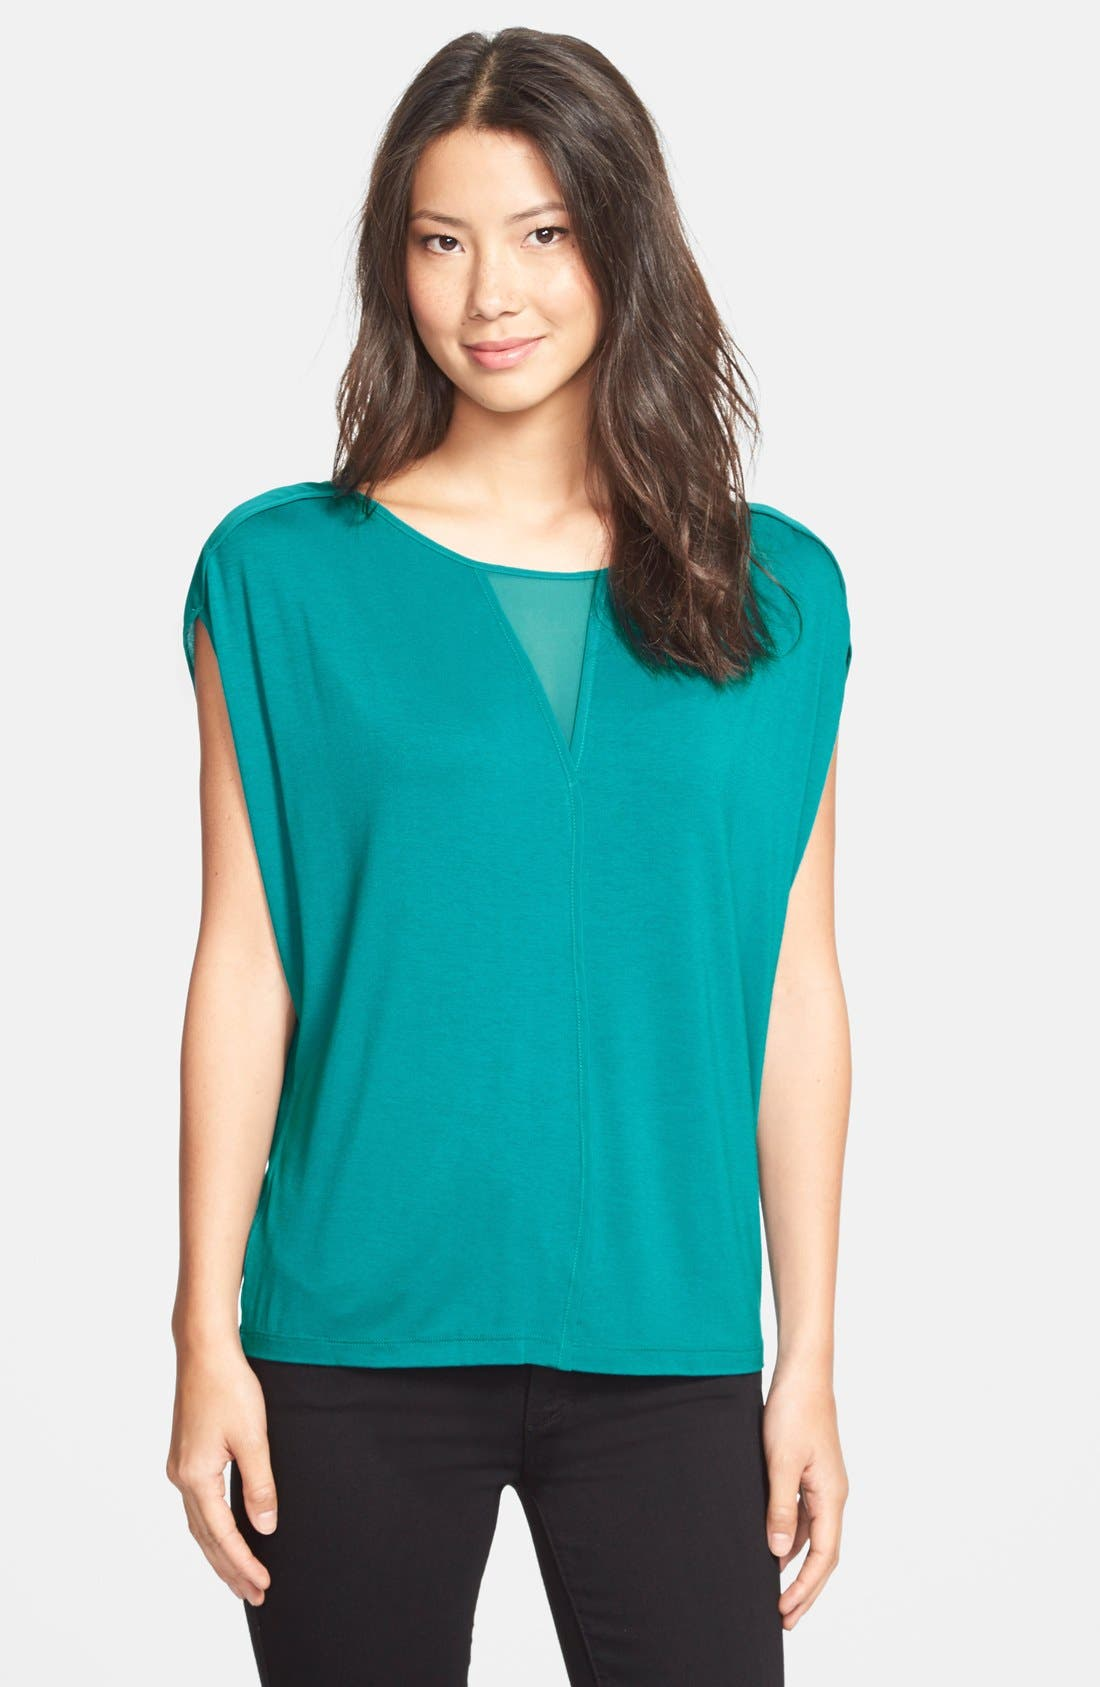 Main Image - Adrianna Papell Chiffon Inset Slouchy Jersey Top